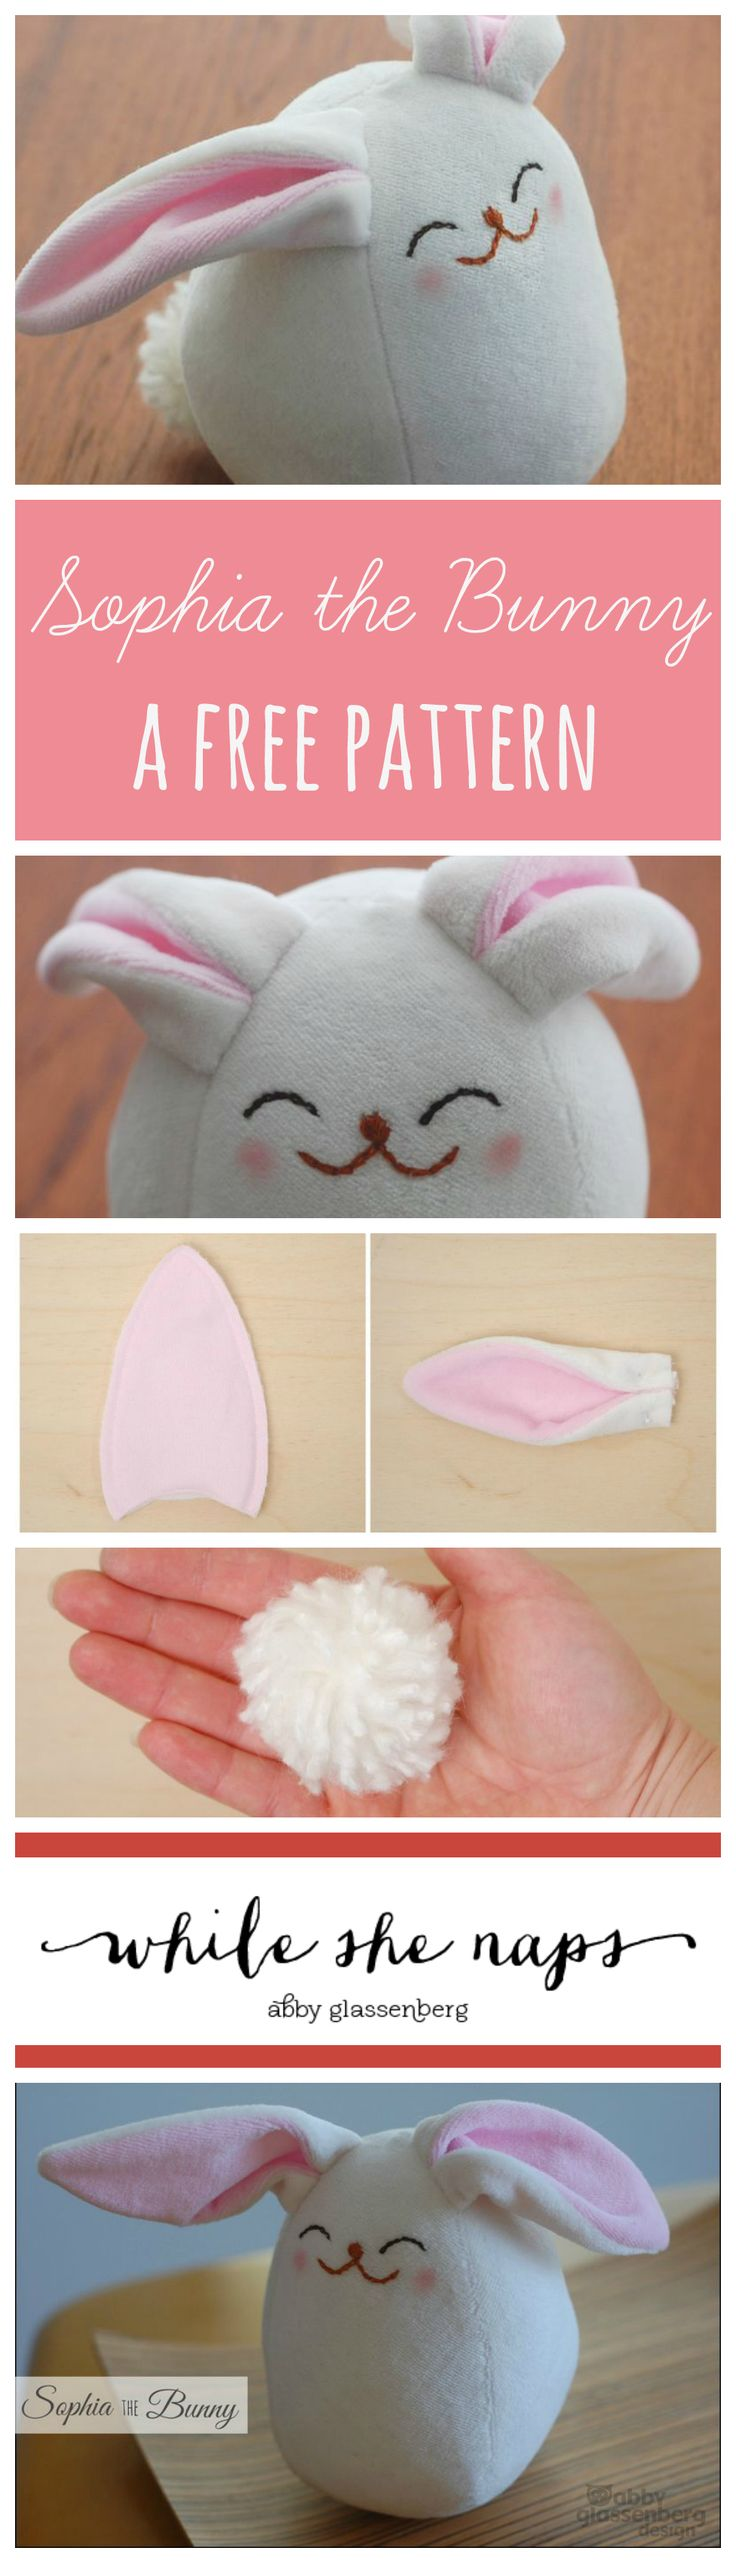 A free pattern for Sophia the Bunny